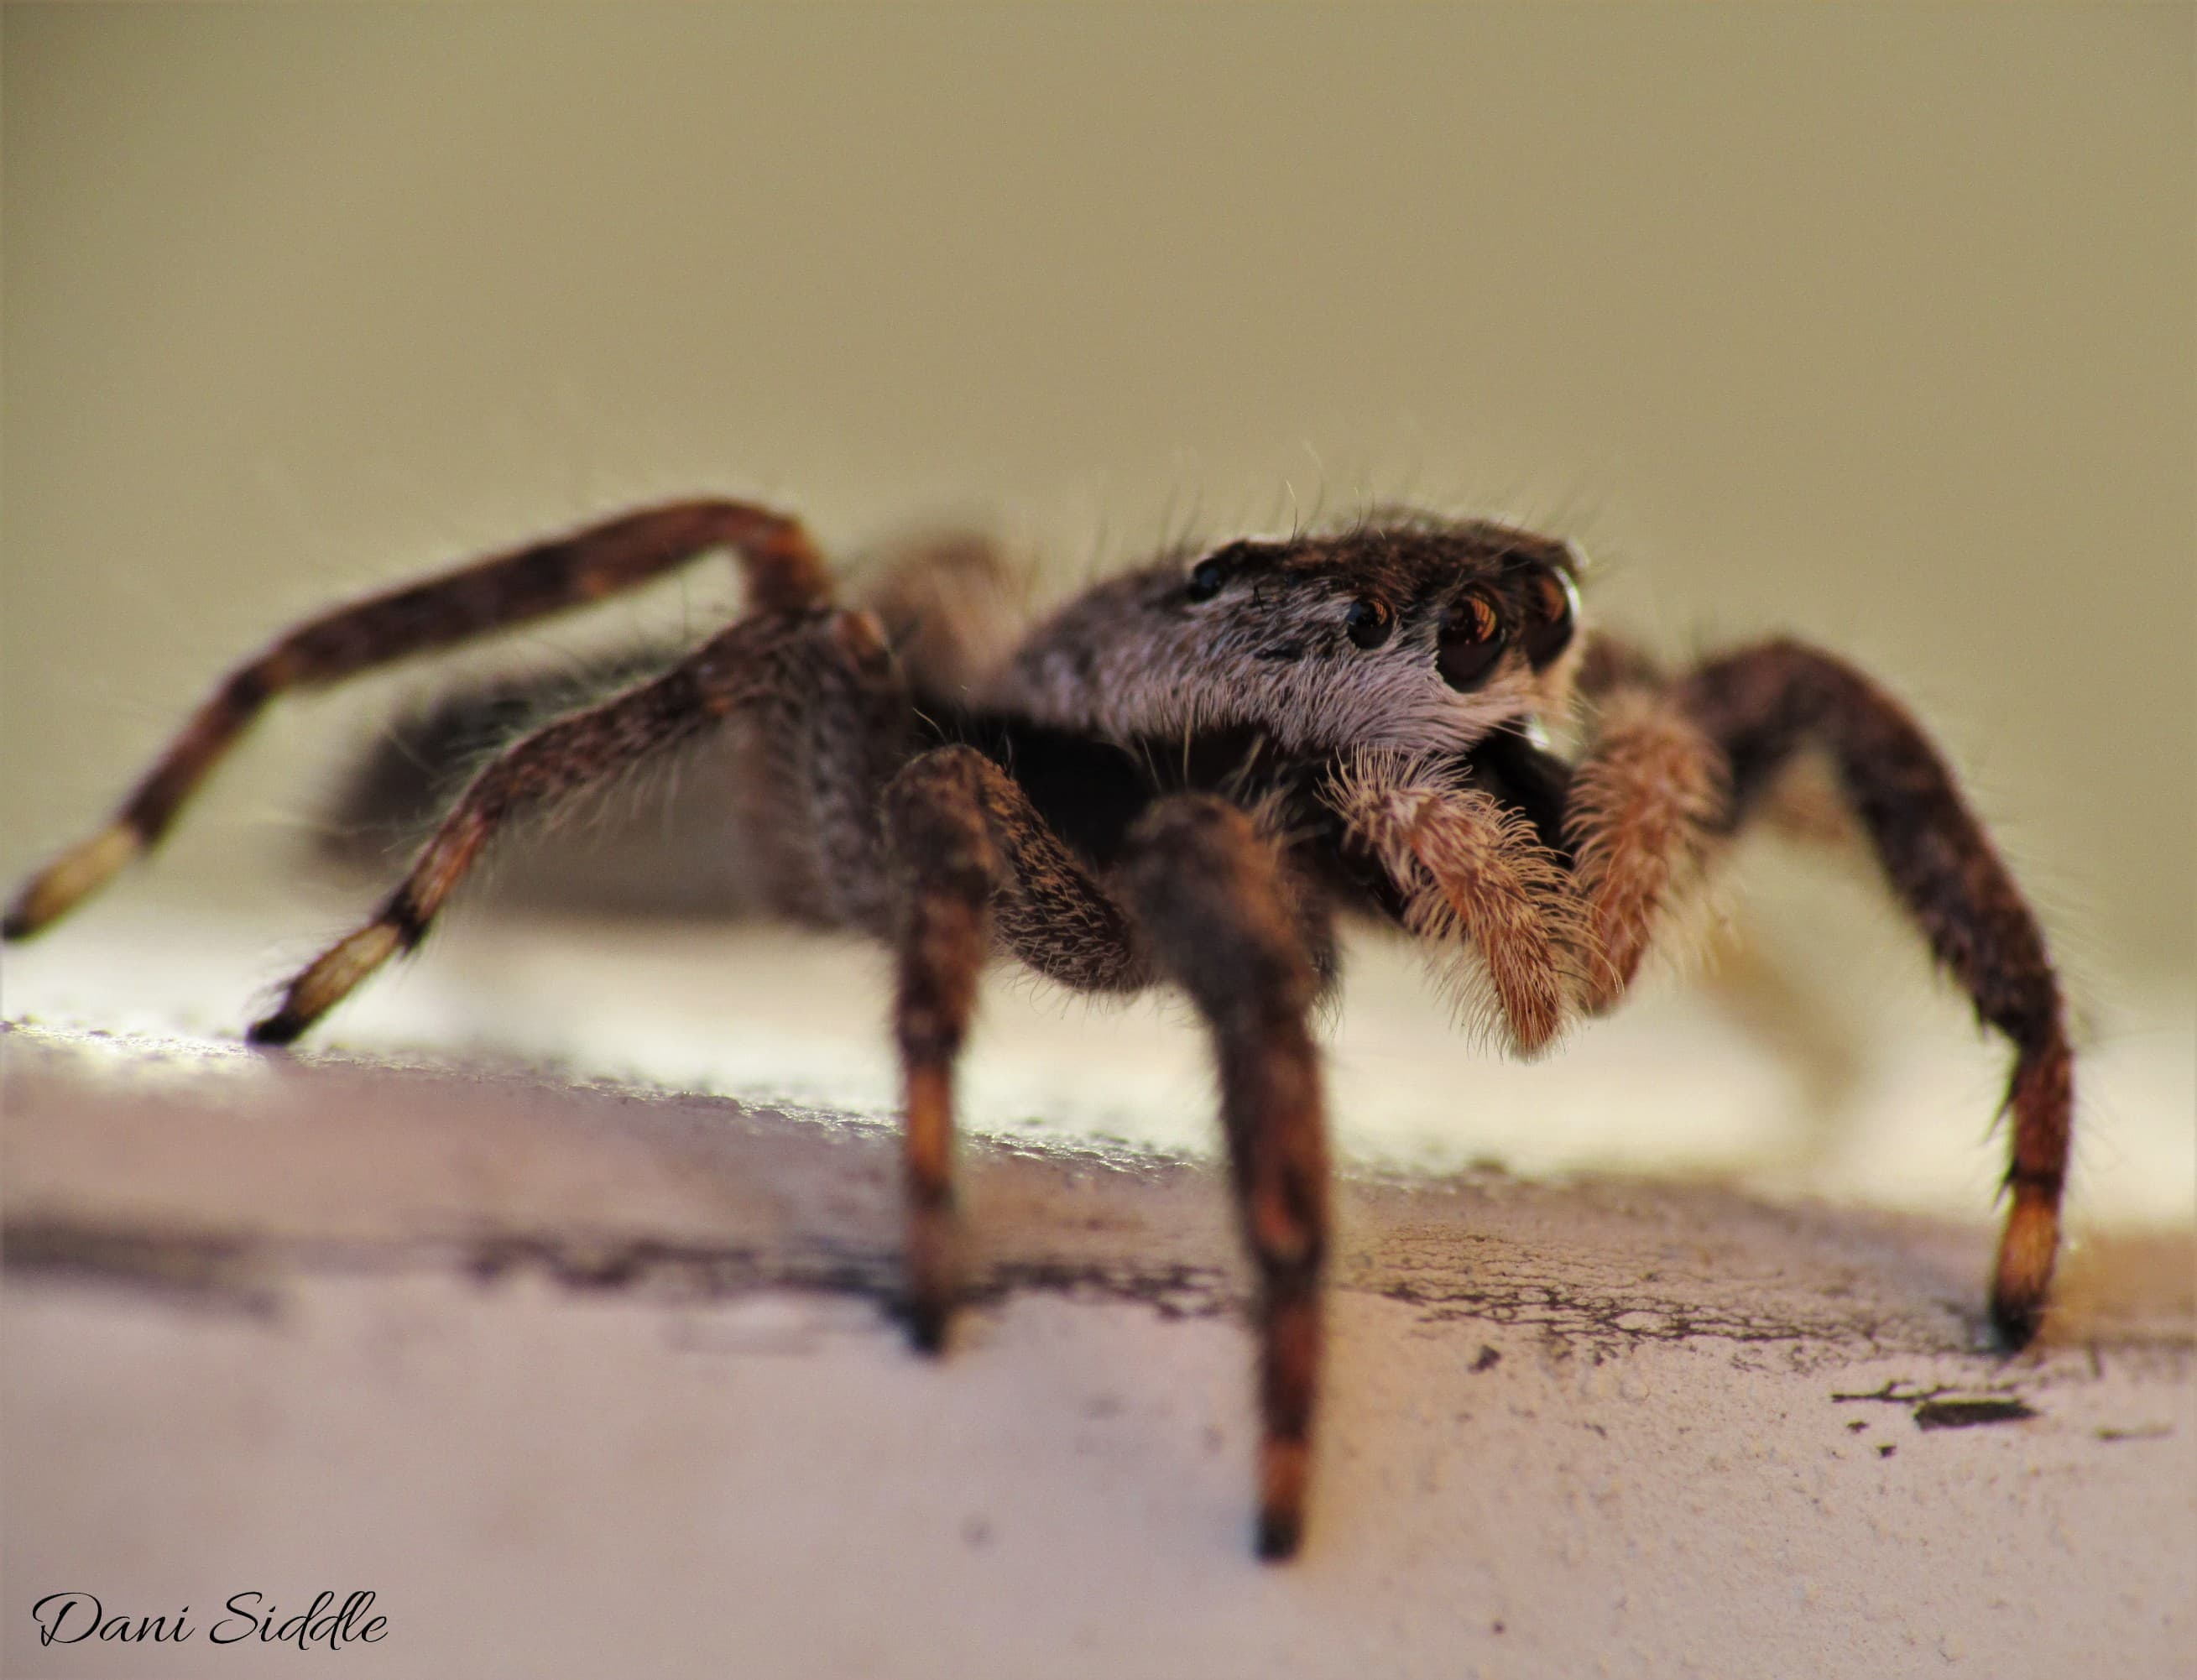 Picture of Platycryptus undatus (Tan Jumping Spider) - Female - Lateral